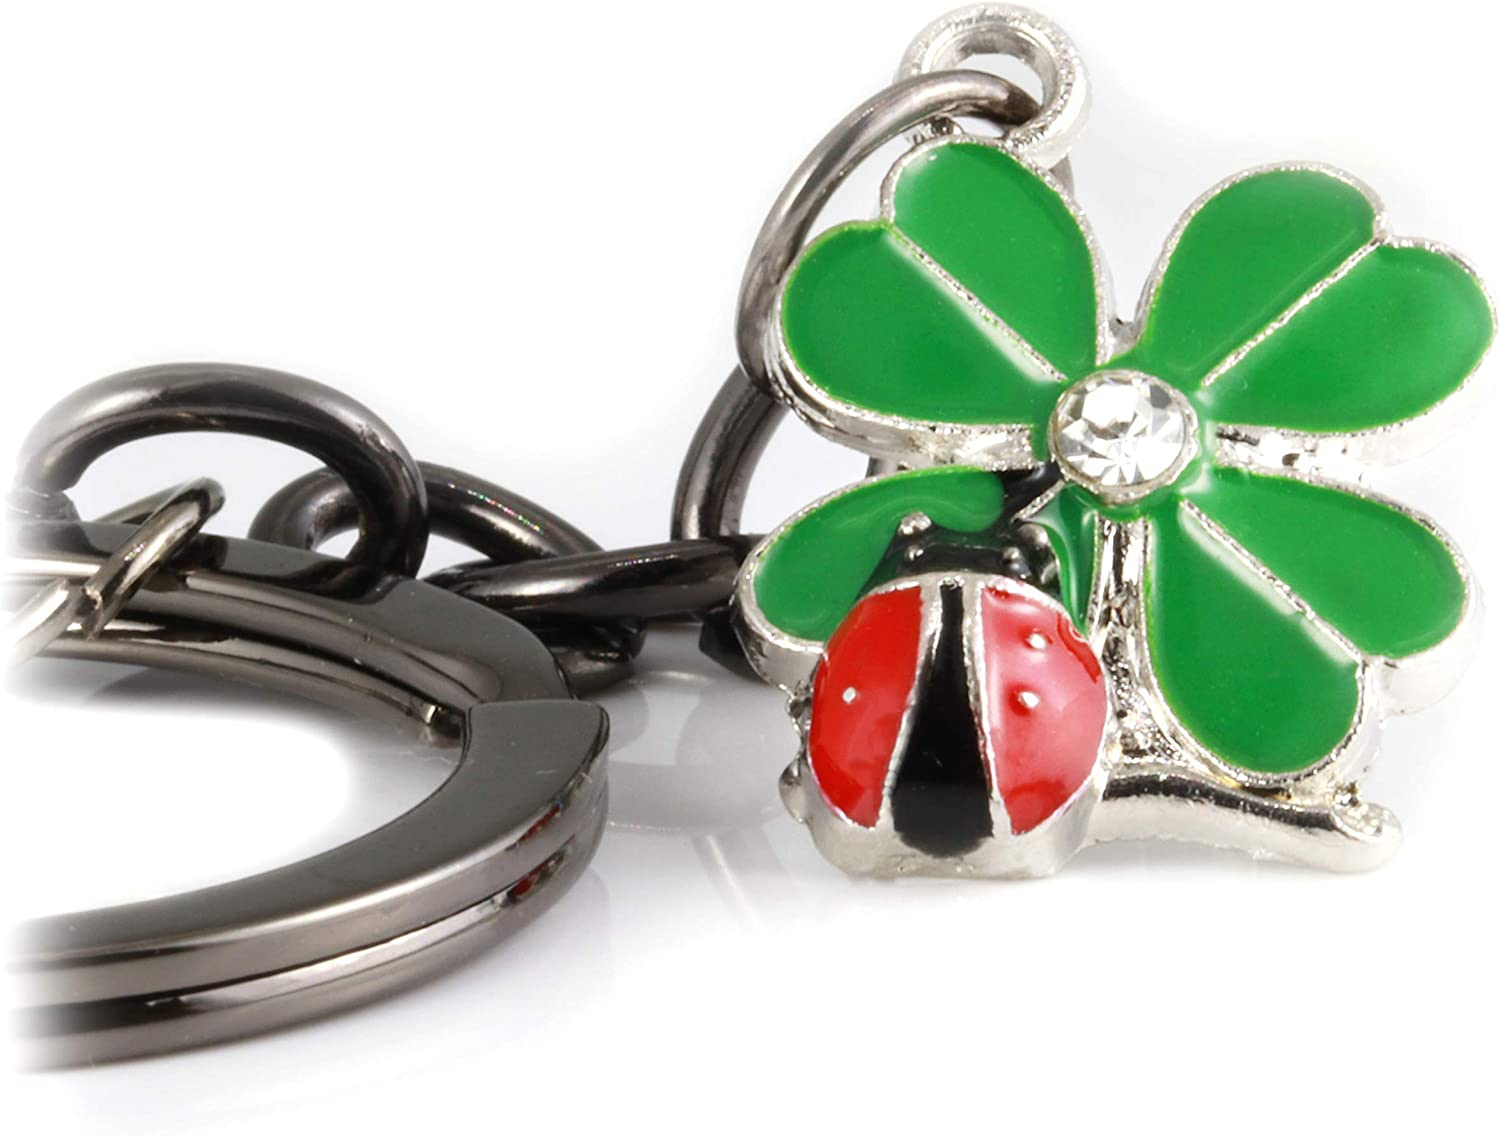 Ladybug Gifts | Ladybug Key Chain of a Lady Bug on a Four Leaf Clover Lucky Keychain 1 inch diameter Black Key Chain with Black Chain to the Ladybug Charm on a Four Leaf Clover with Rhinestone Center